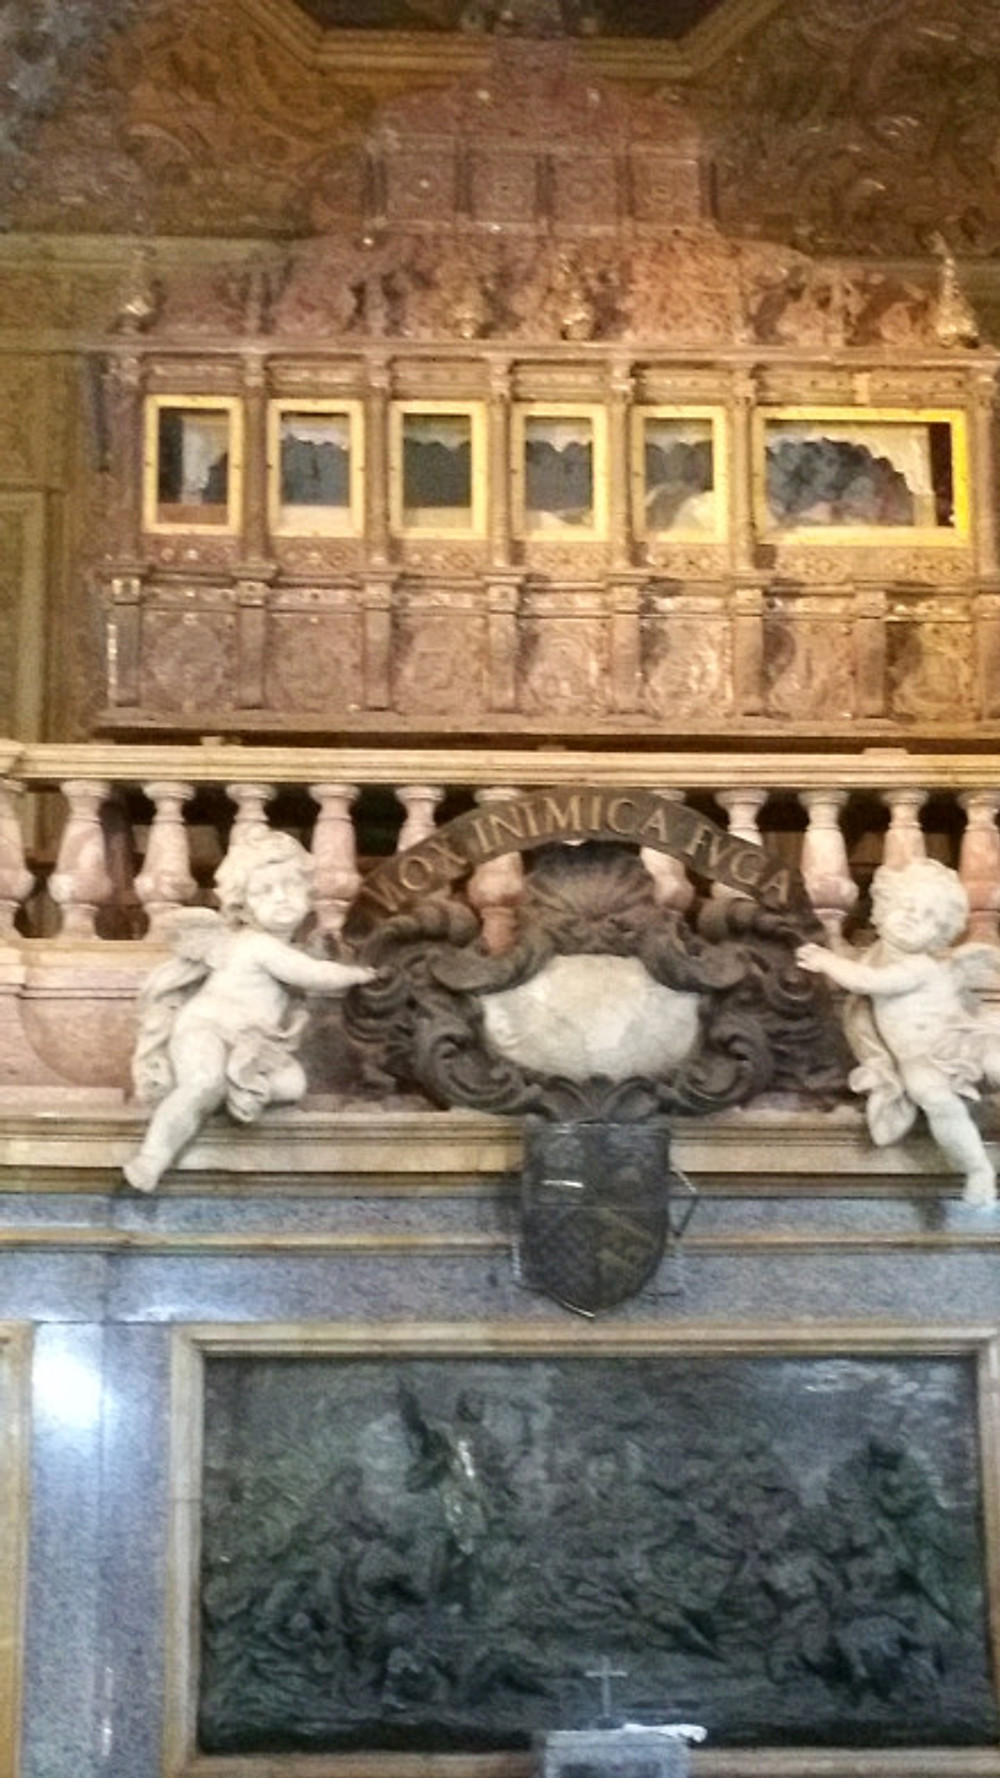 This is Francis Xavier's casket. If you look real close, you can see him through the windows!